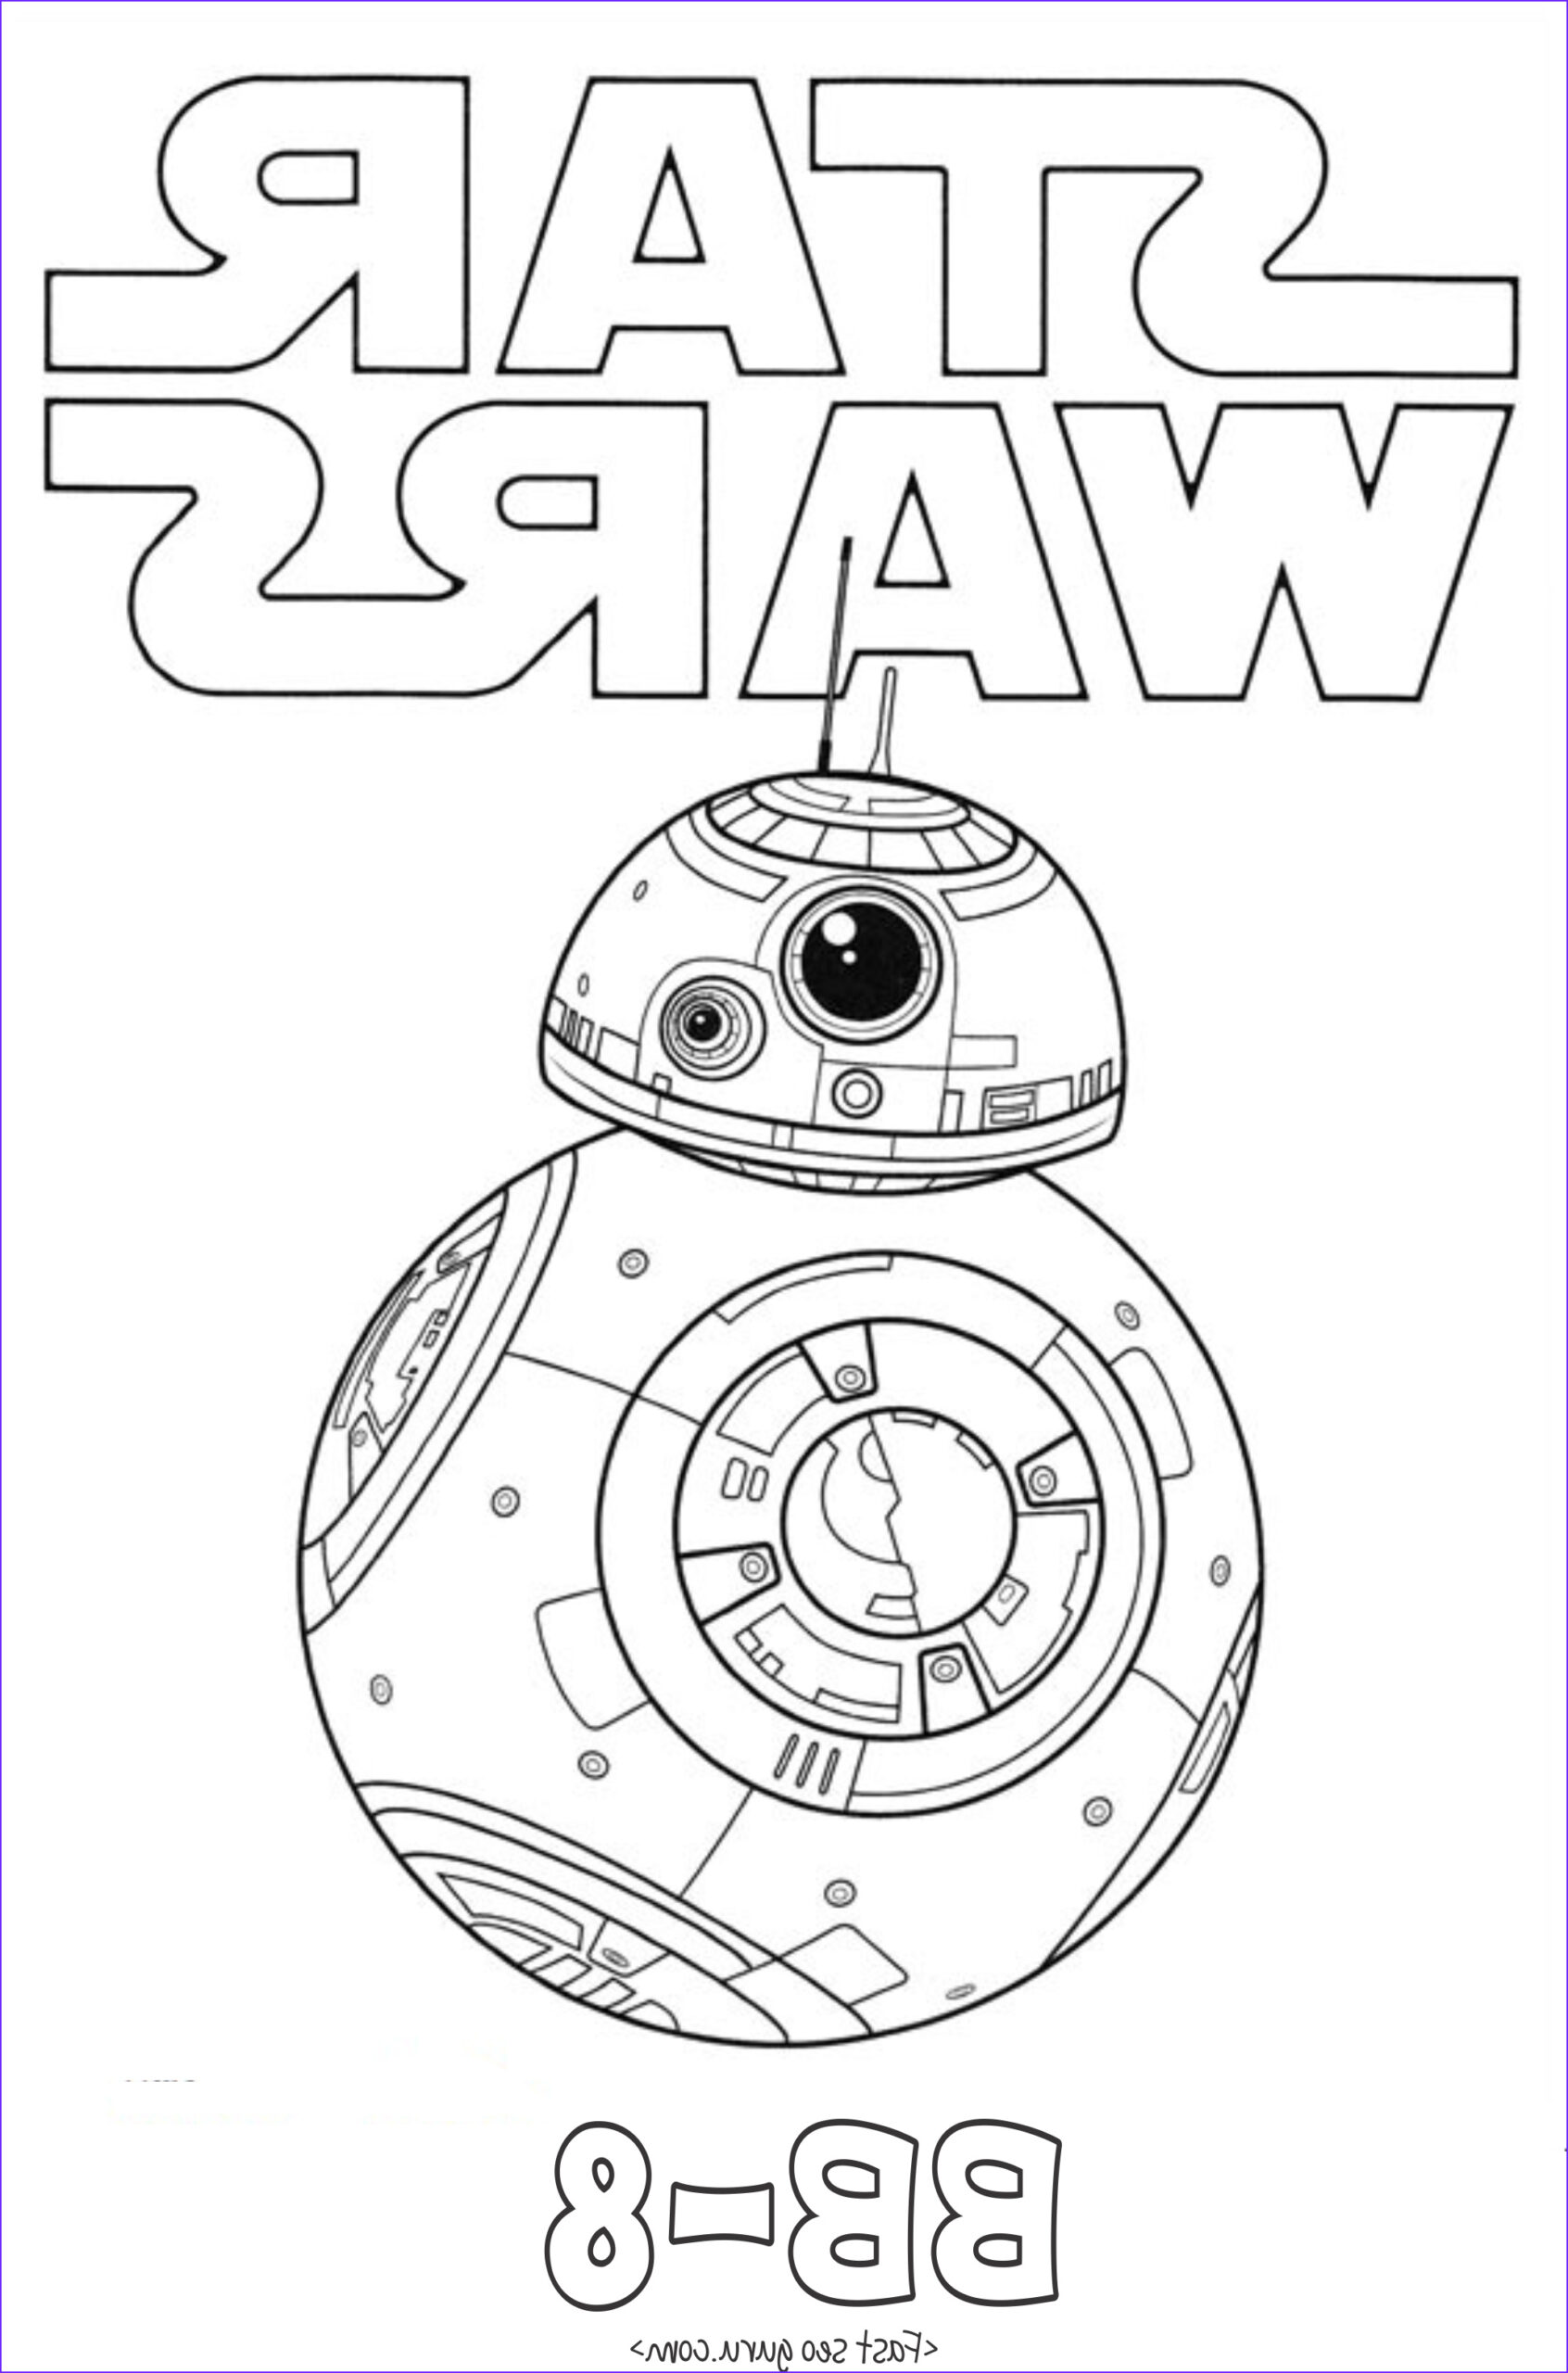 Star Wars the force Awakens Coloring Pages Cool Gallery Star Wars the force Awakens Bb 8 Coloring Pages